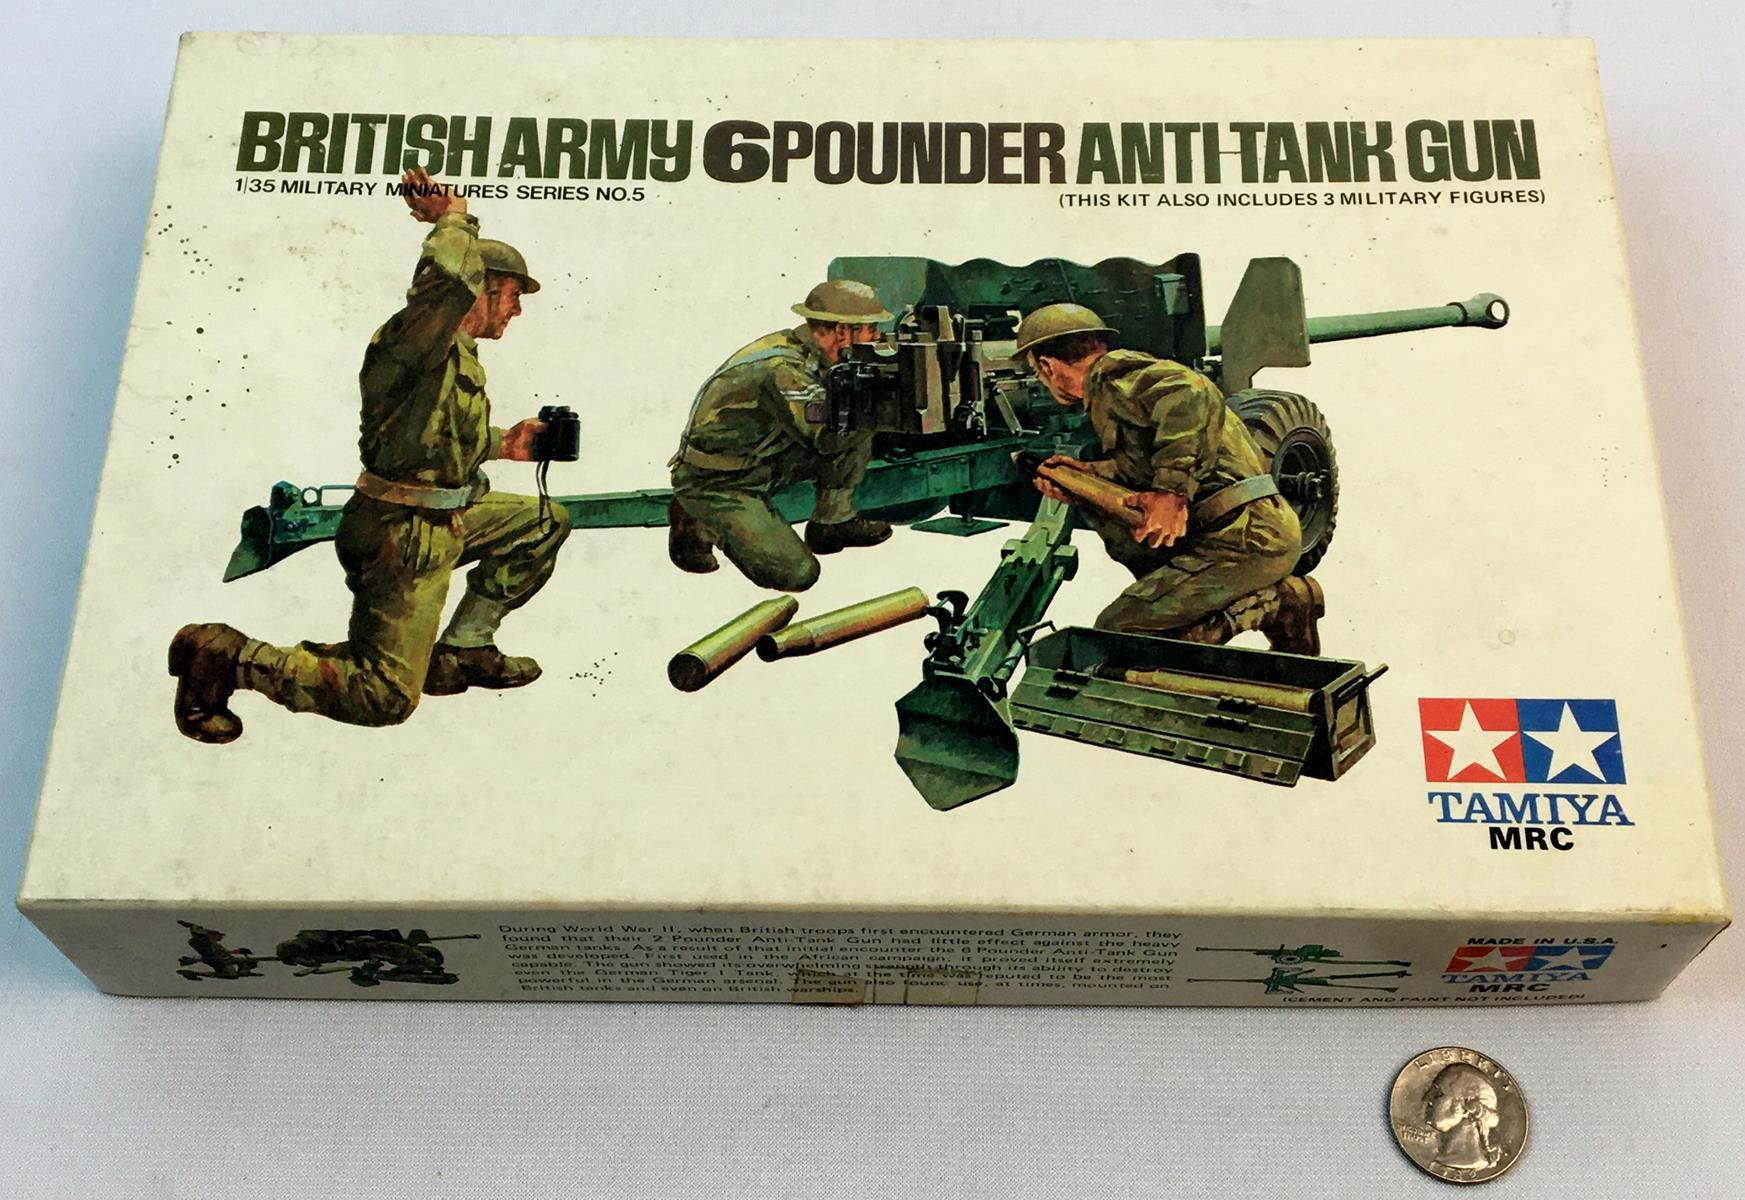 Vintage 1970's British Army 6 Pounder Anti-tank Gun 1/35 Scale Tamiya Model Kit UNBUILT